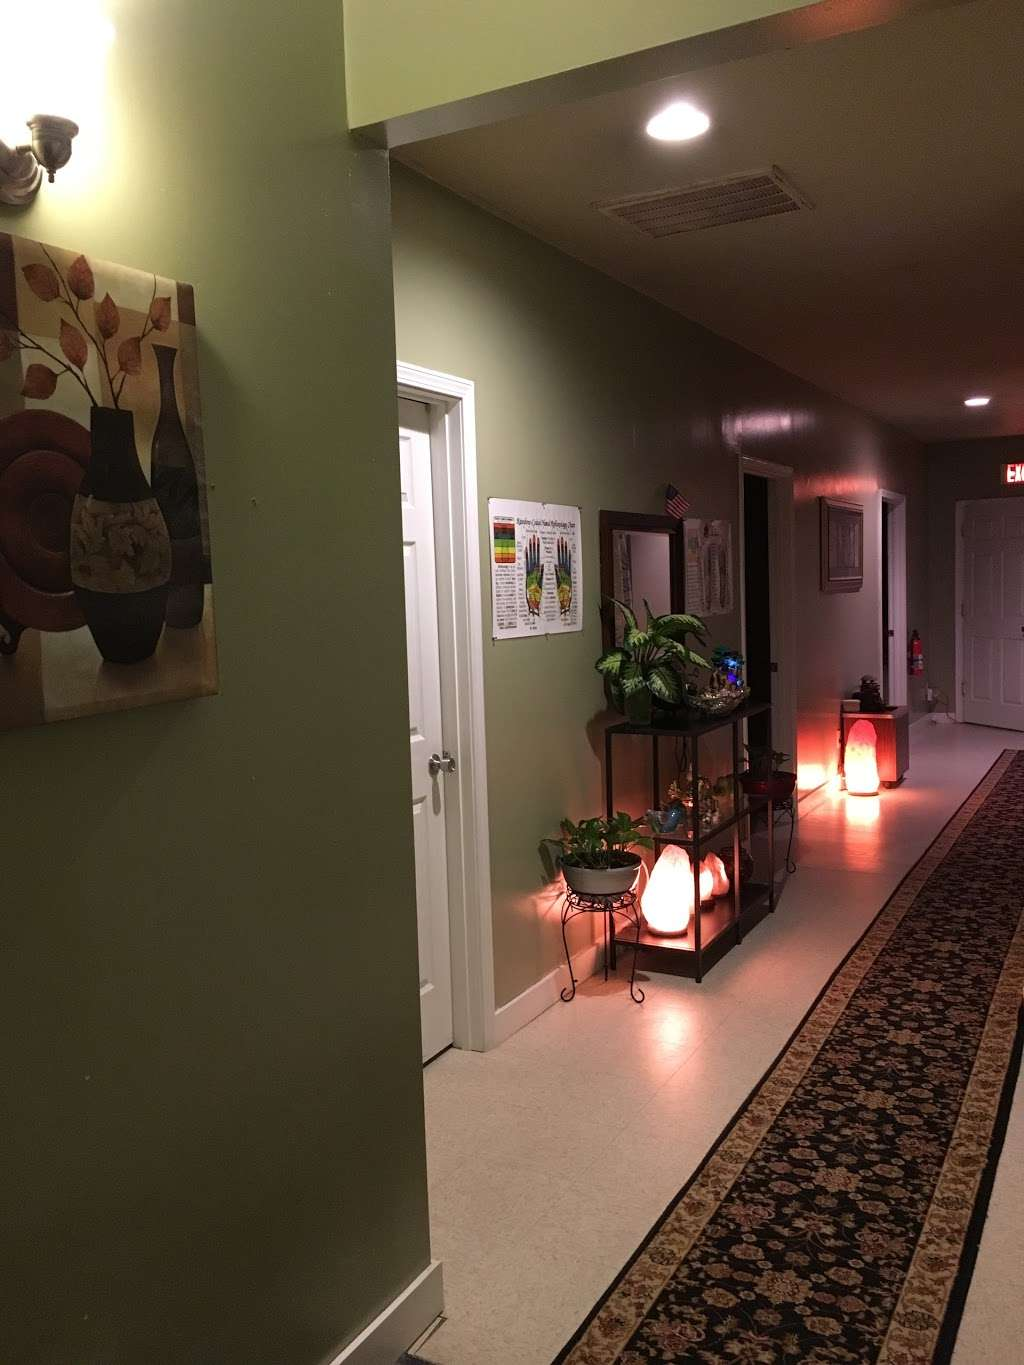 Lilly Spa | 714 Montana Dr suite g, Charlotte, NC 28216, USA